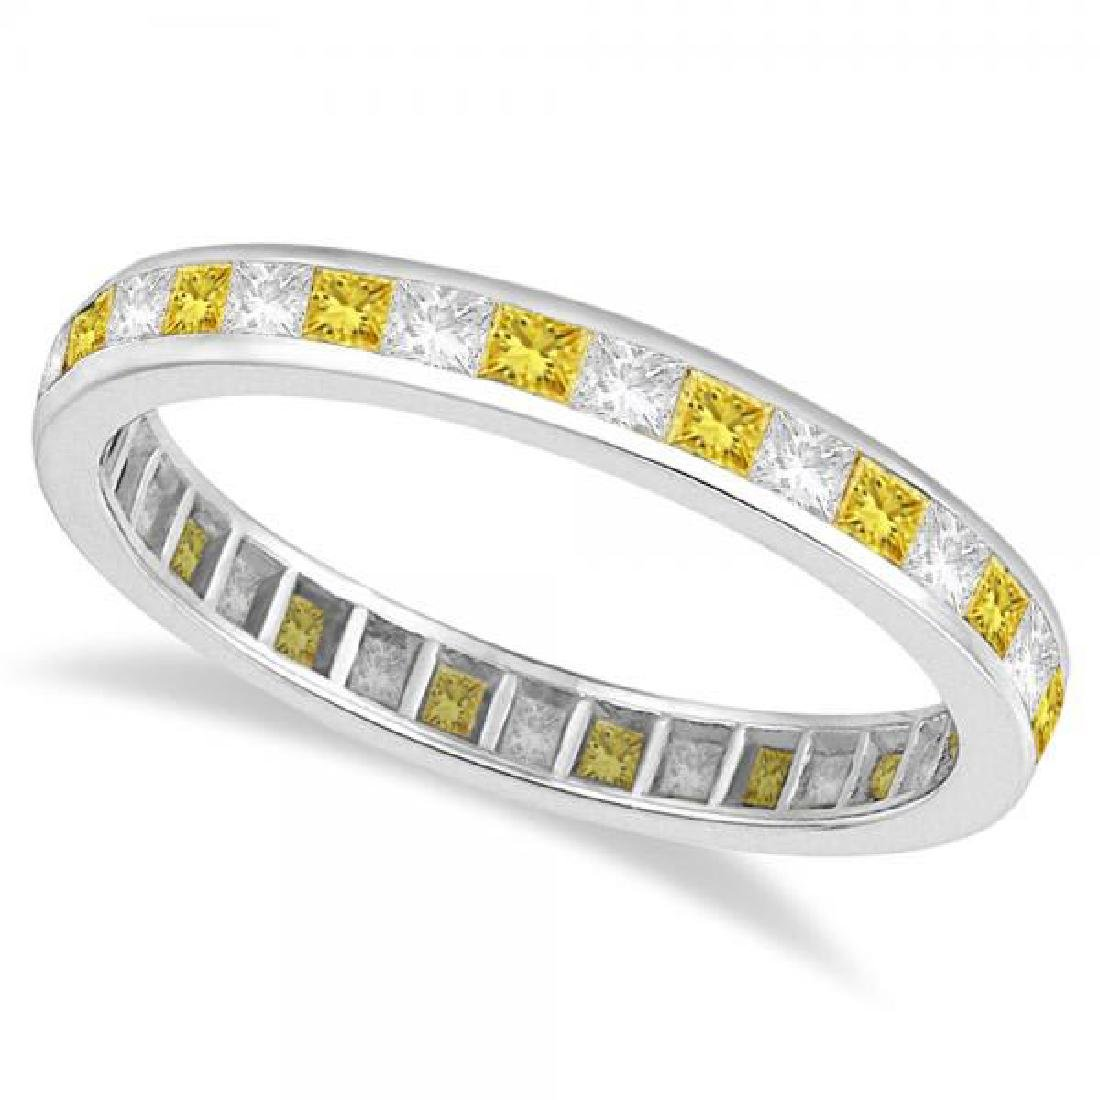 Princess-Cut Yellow and White Diamond Eternity Ring 14k